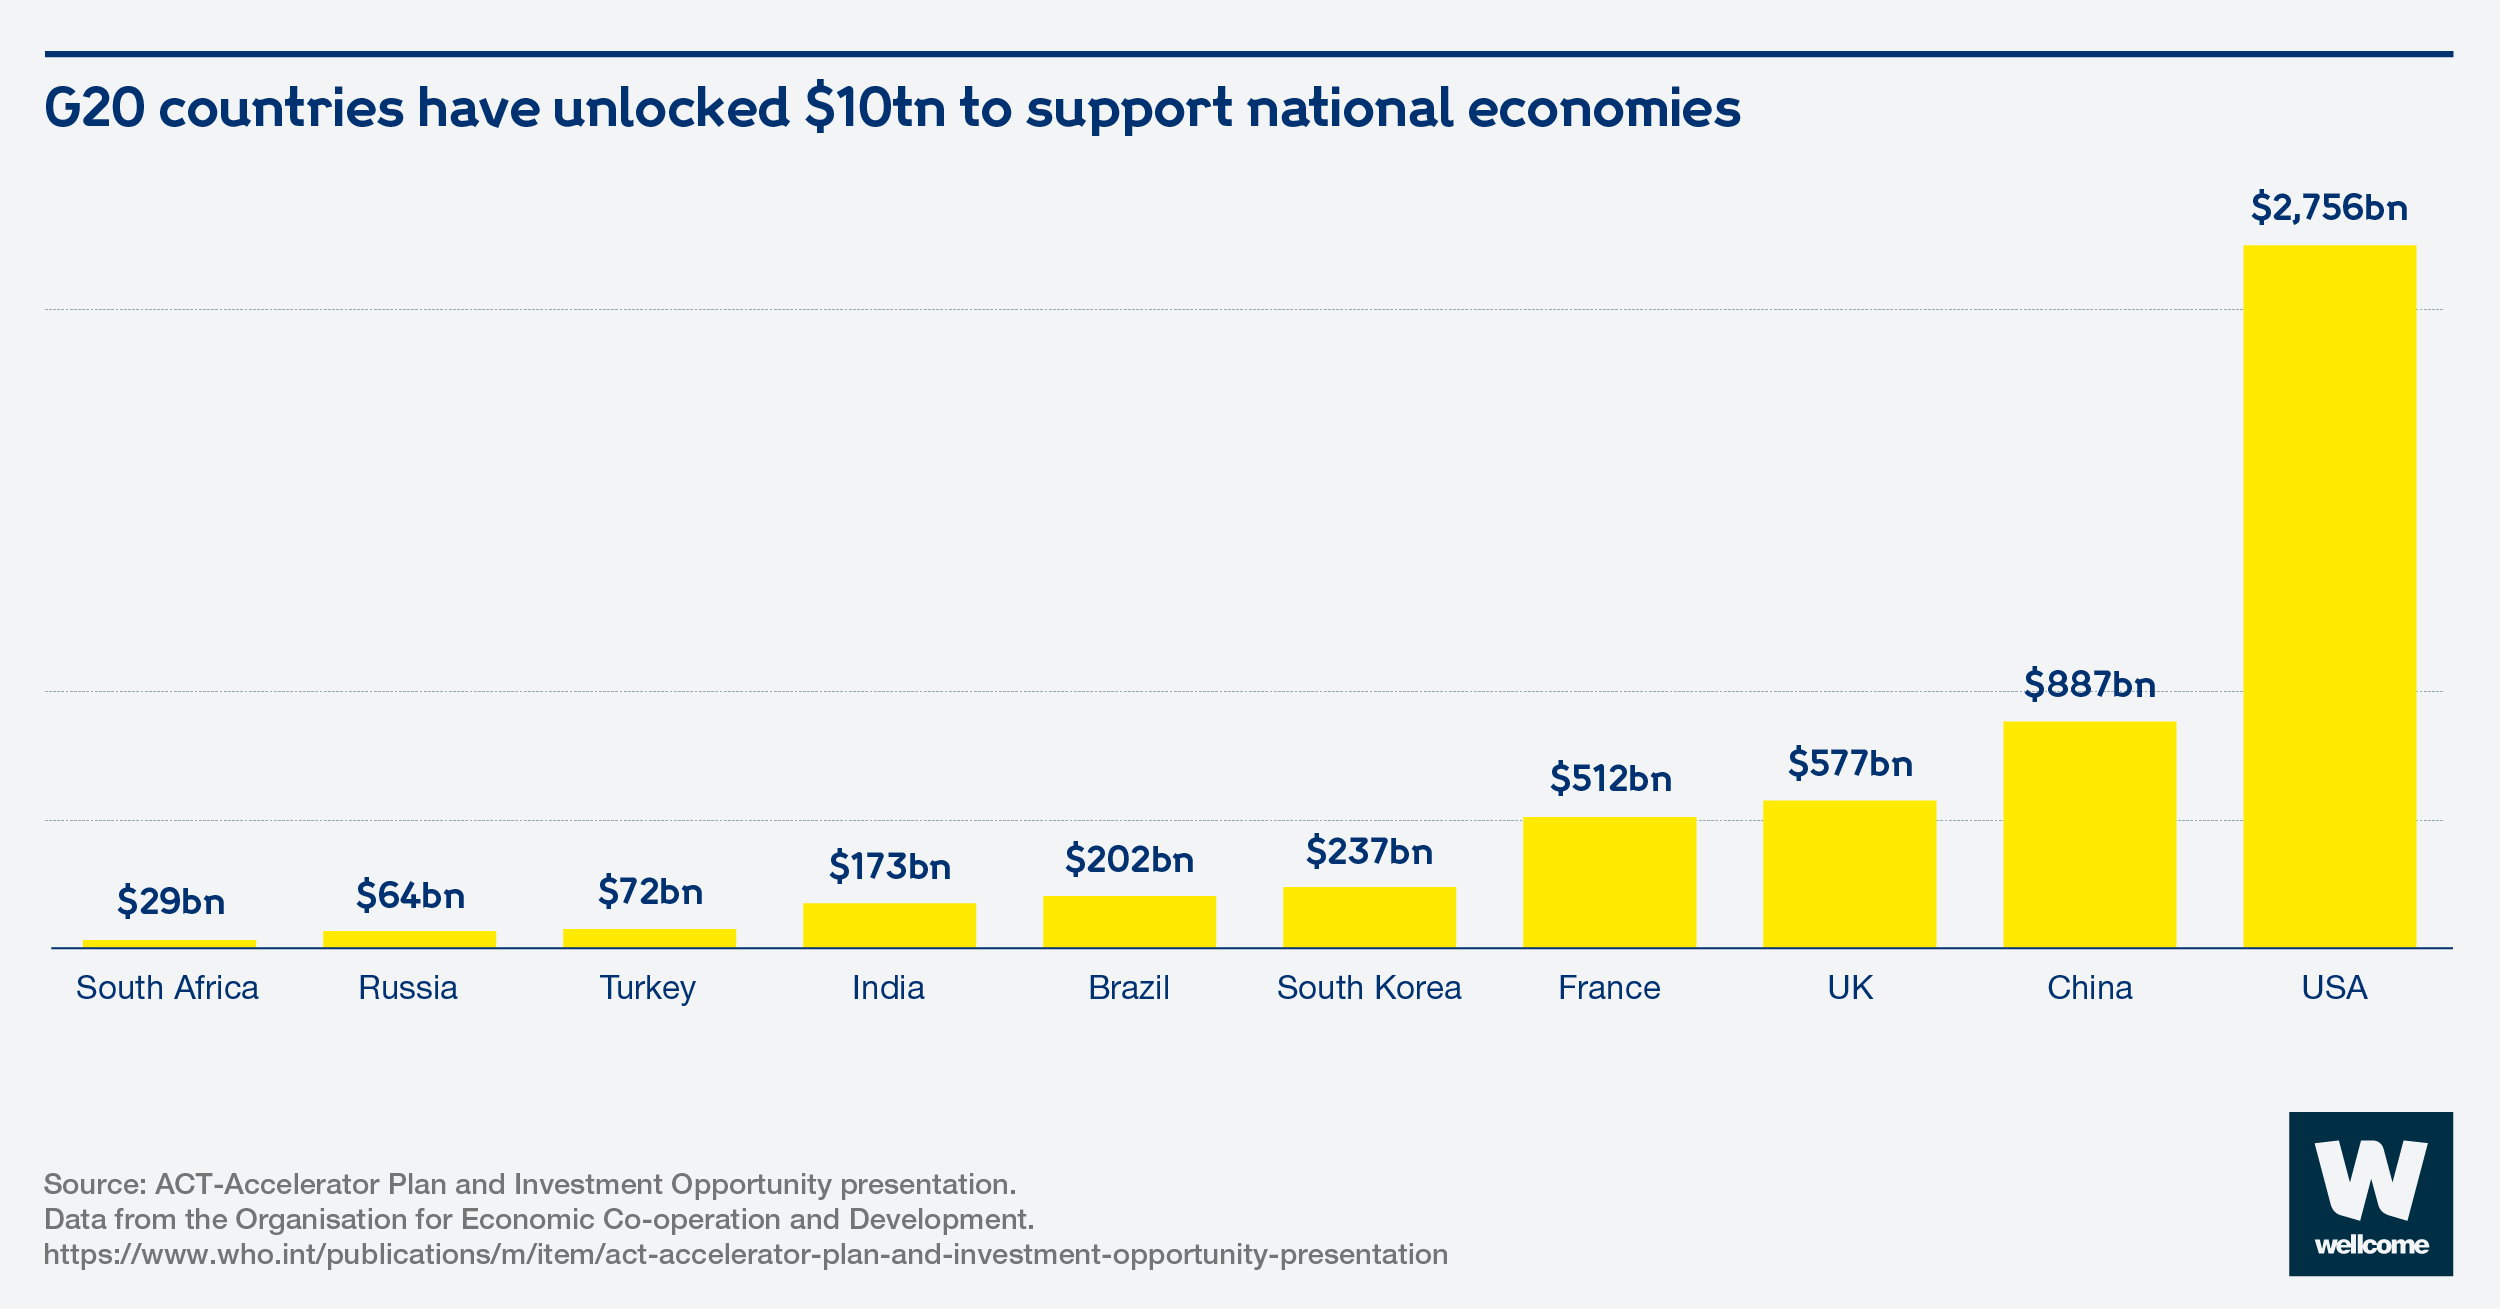 Graphic showing the size of the stimulus packages unlocked by ten G20 countries.